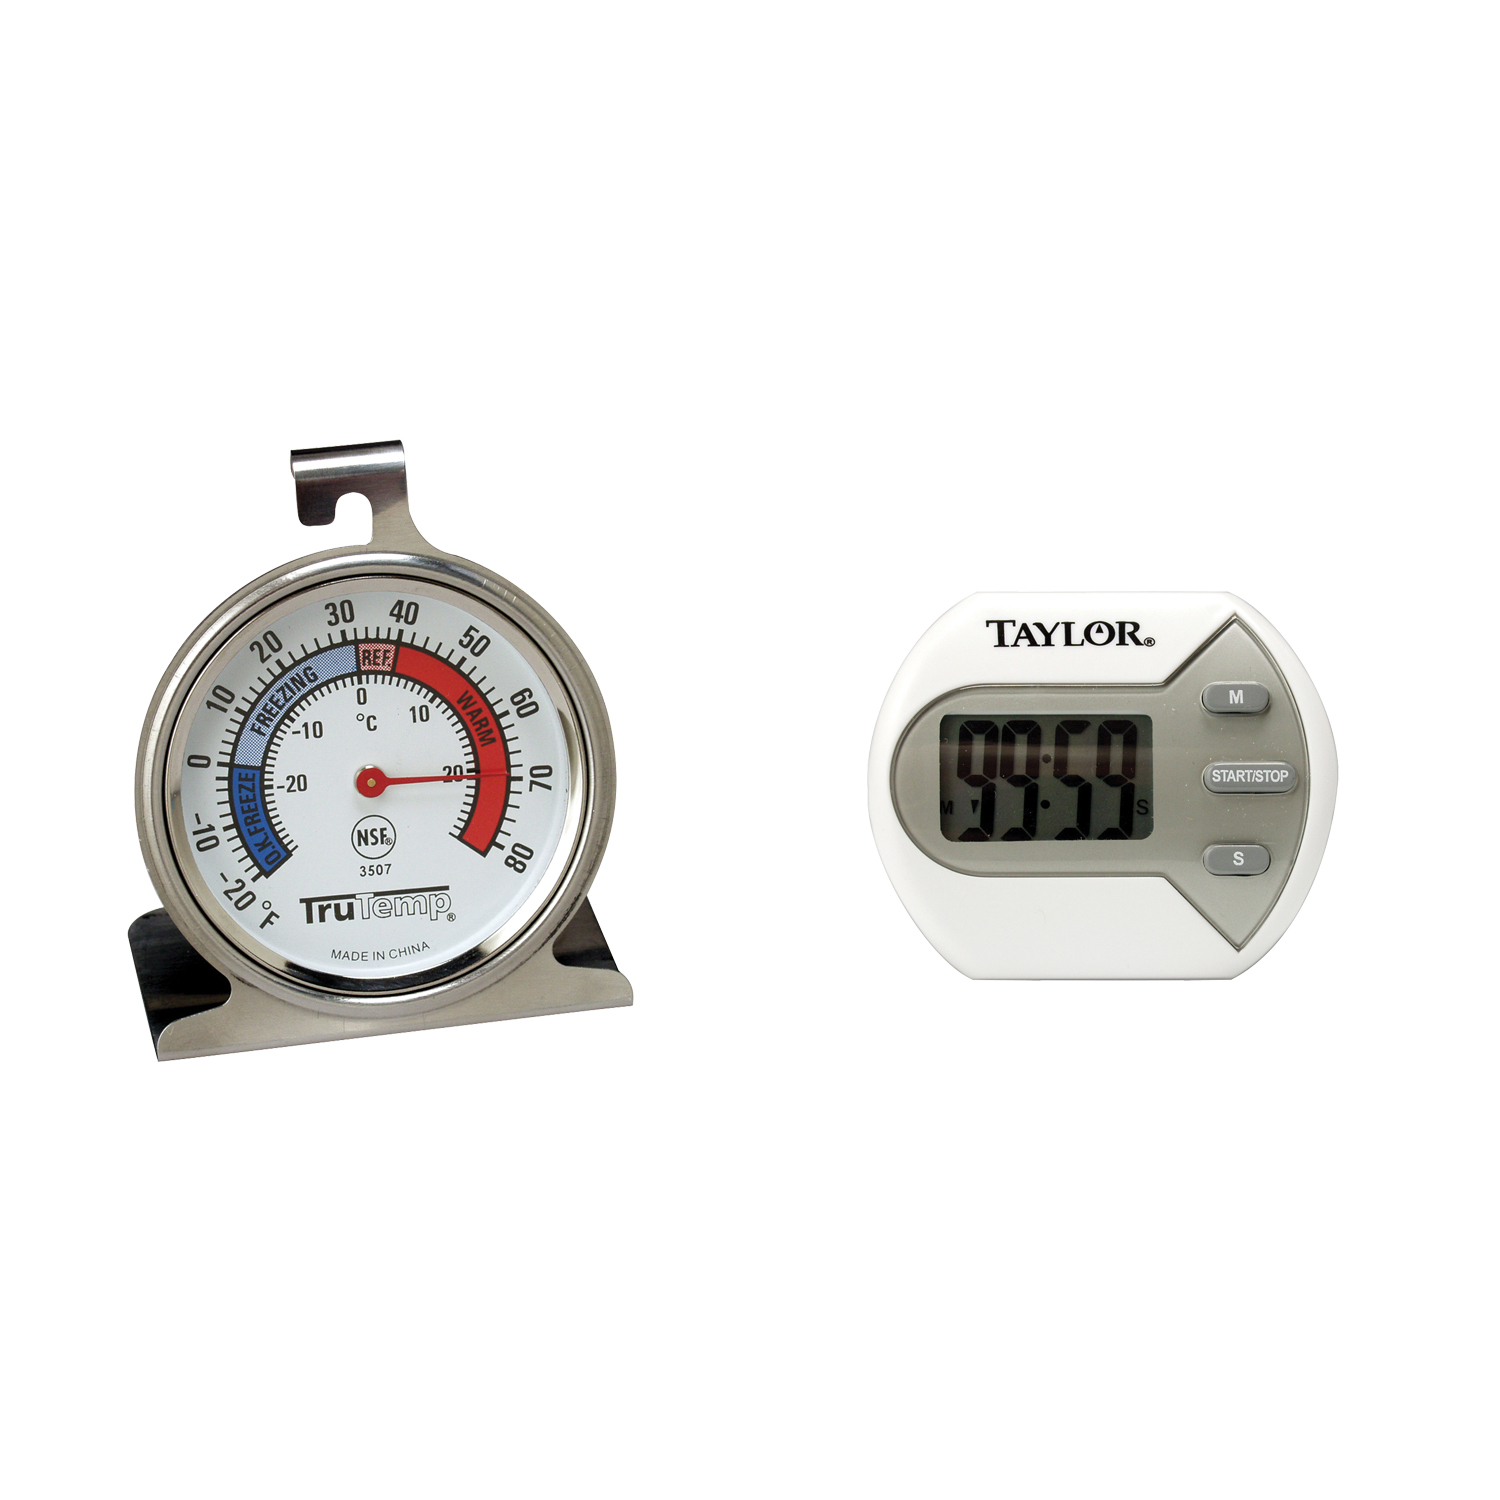 2-Pack Taylor Precision Freezer Thermometer 2.5 Dial Durable Stainless Steel